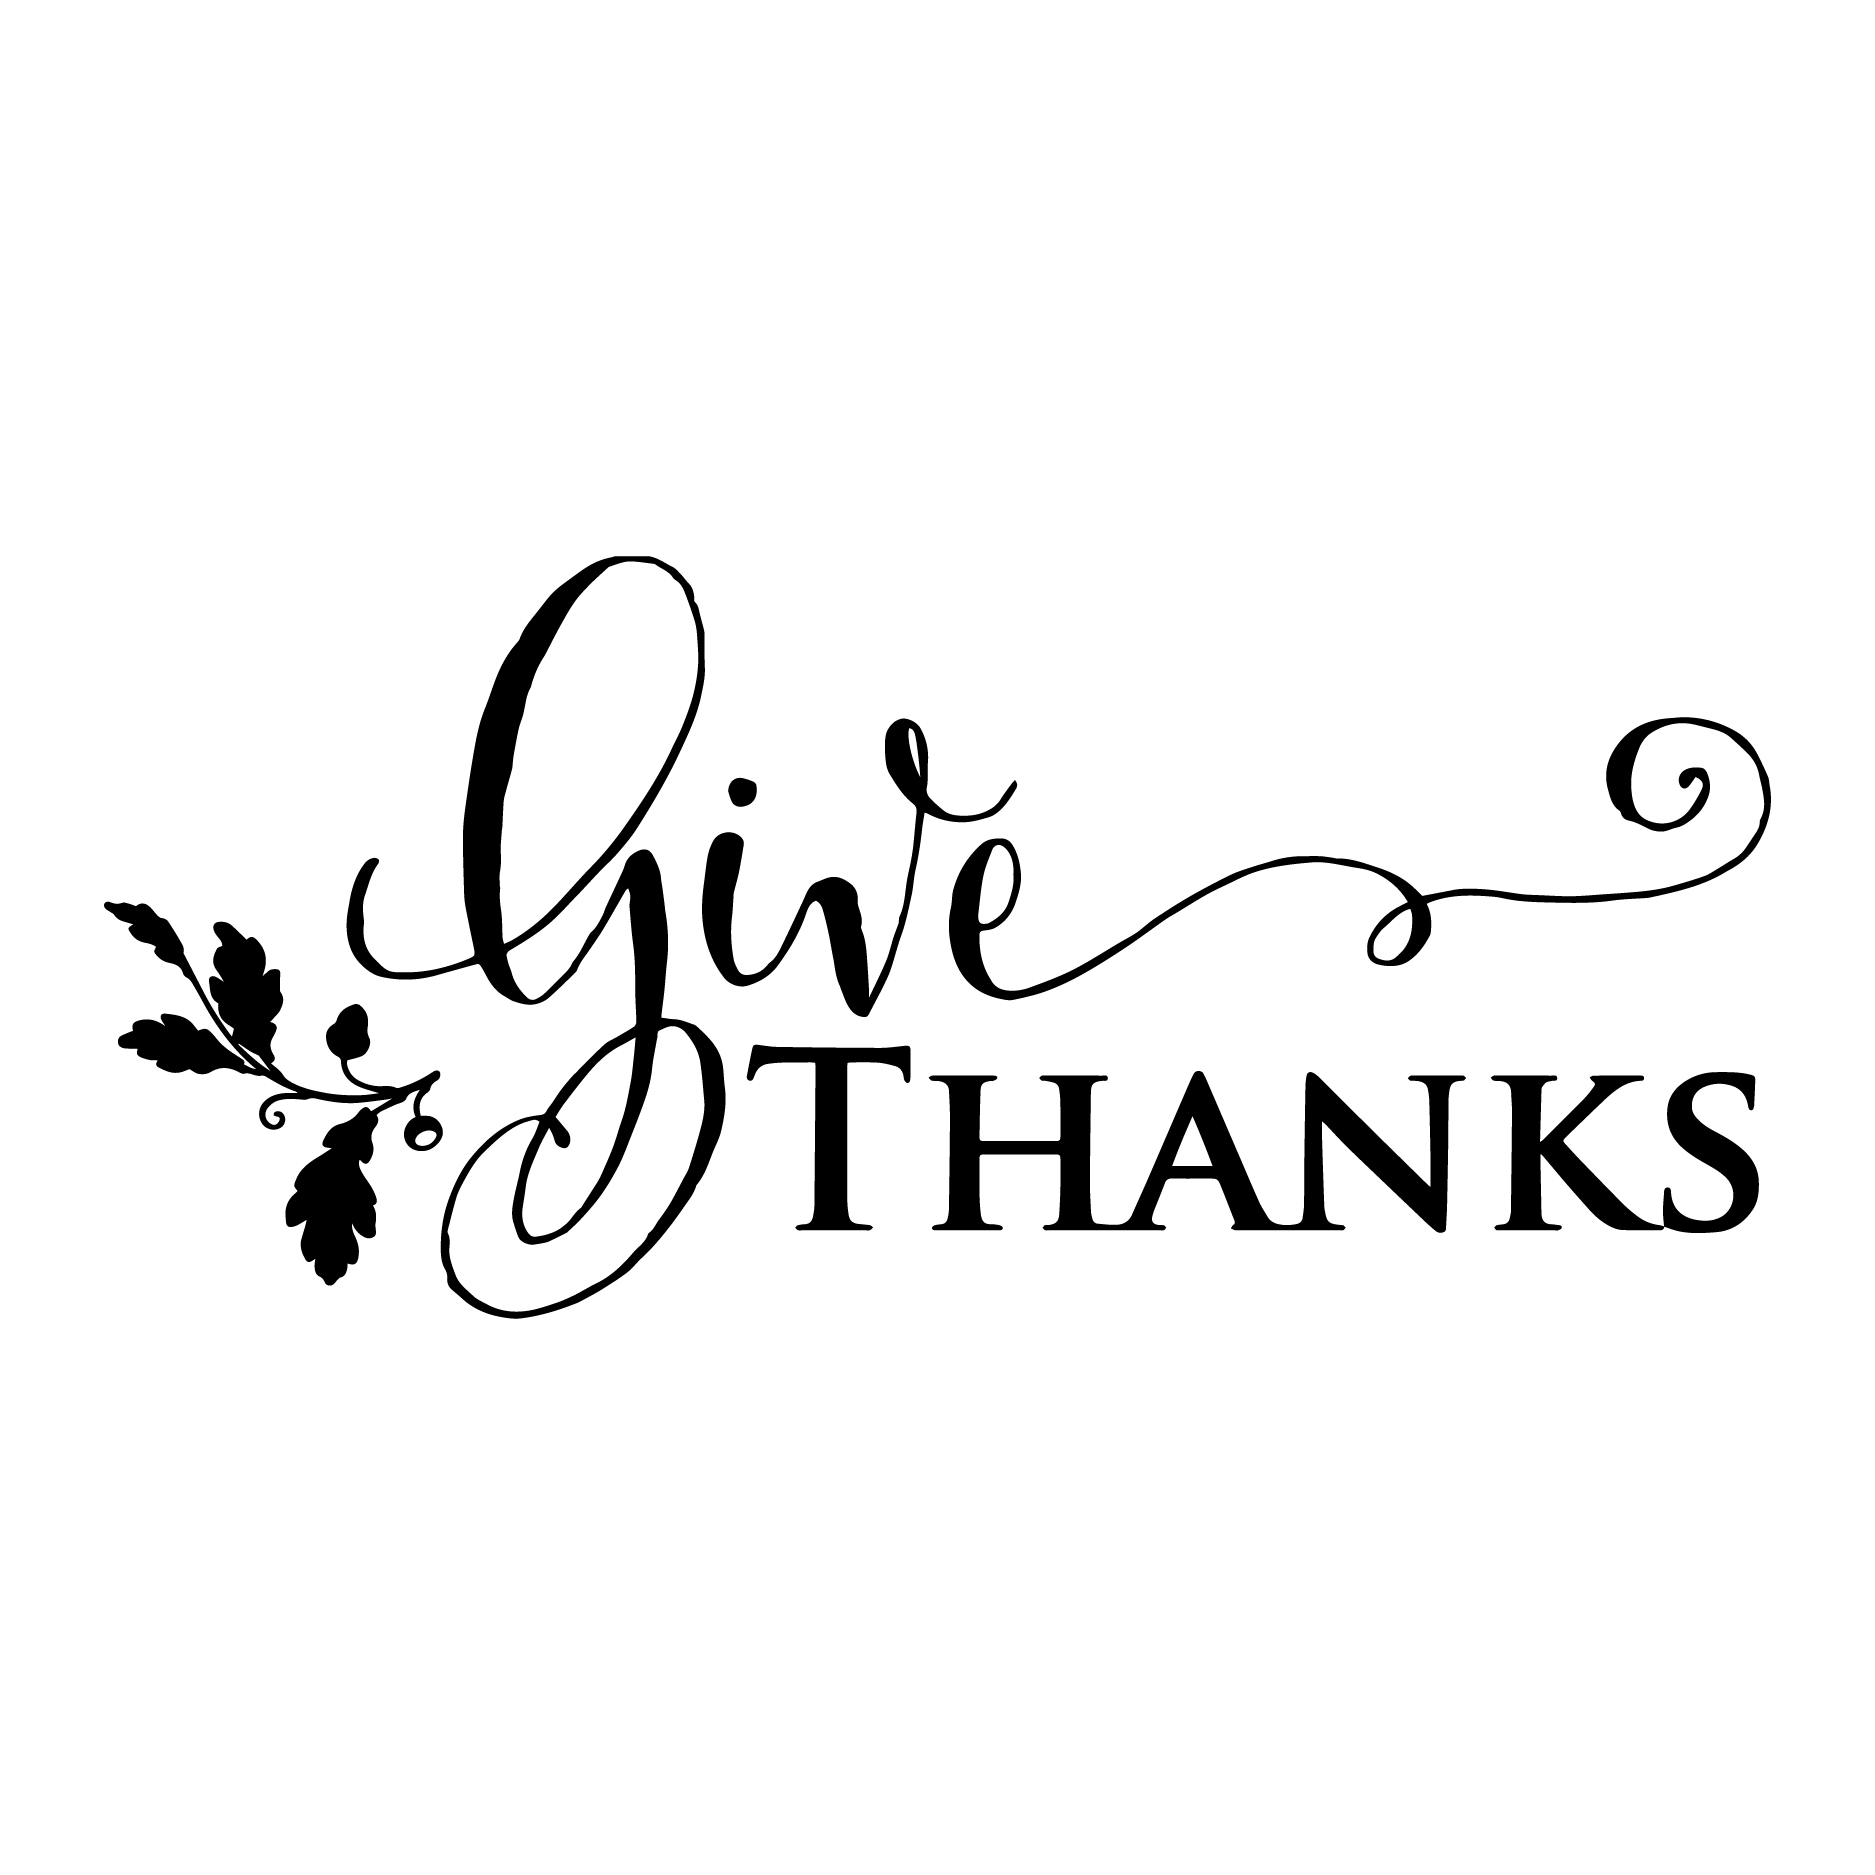 Thanksgiving quote clipart banner freeuse library Give Thanks PNG Black And White Transparent Give Thanks Black And ... banner freeuse library